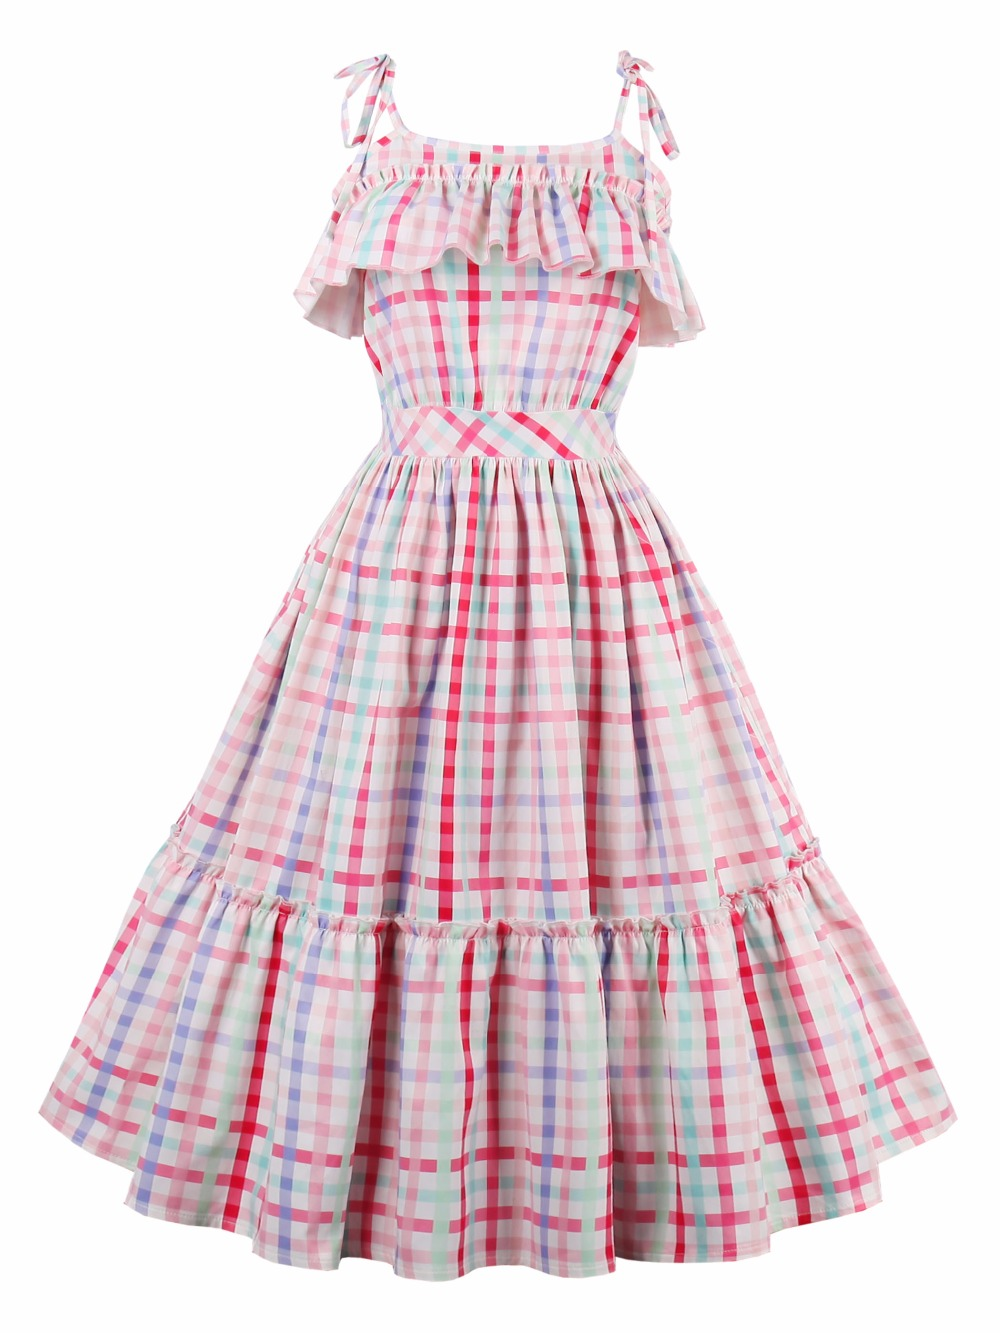 Sisjuly Vintage Dresses Plaid Pattern Summer Dress Sexy Spaghetti Strap Design Midi Dresses For Women 388966